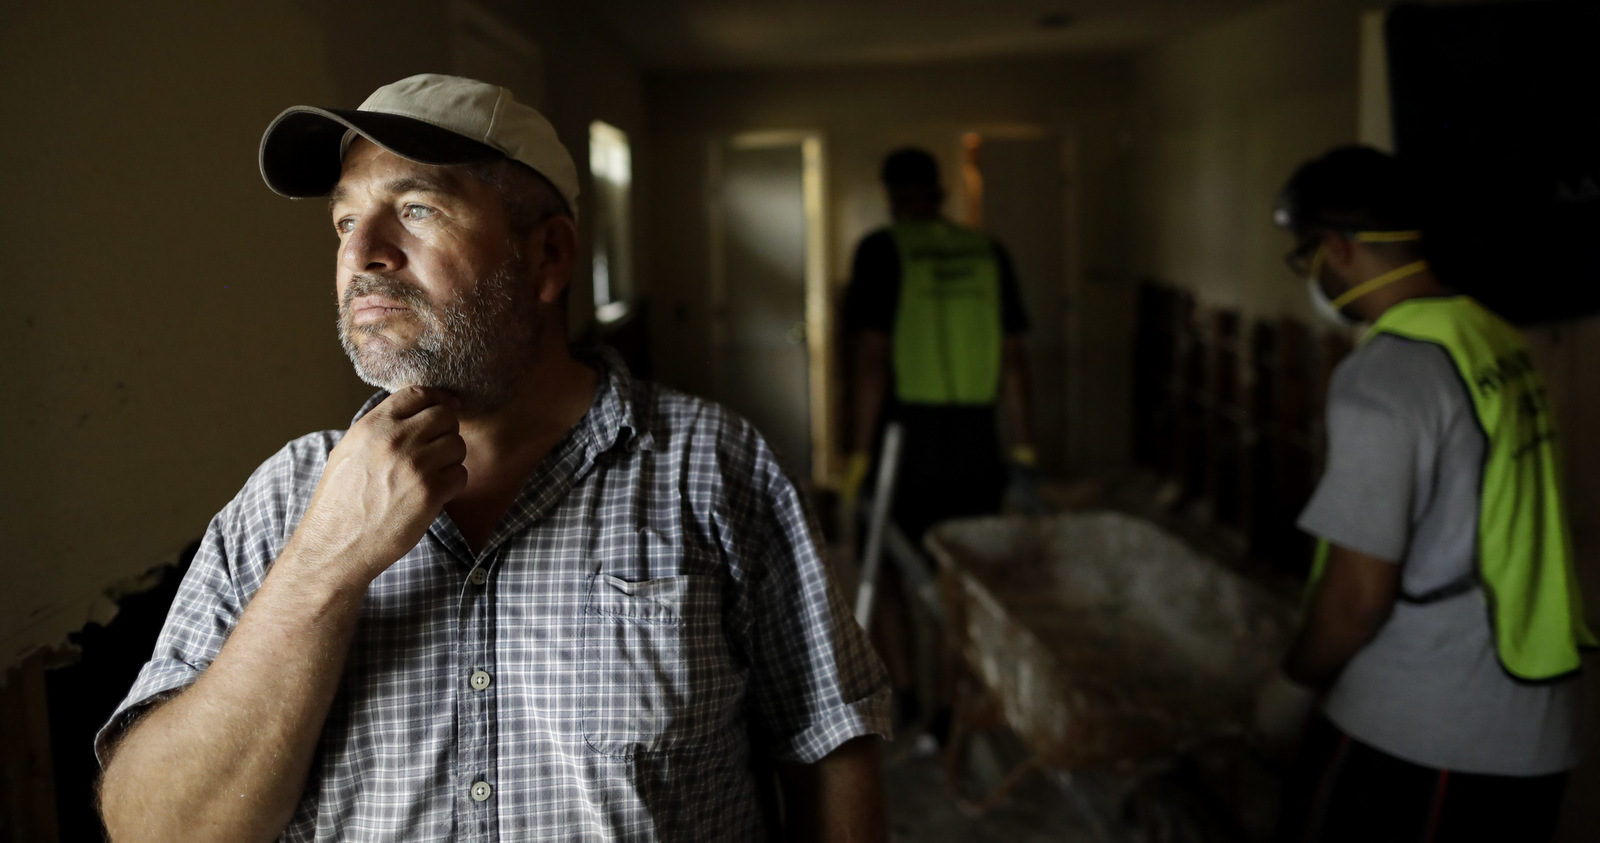 In this Sunday, Sept. 3, 2017, photo, Lino Saldana looks out his window towards the bayou that overflowed into his home as volunteers from the Ahmadiyya Muslim Youth Association help him clean out debris in Houston. Like many of his neighbors on flood-ravaged Minden Street, Saldana knows that if he doesn't work, he doesn't get paid. Harvey's epic 52 inches of rain didn't discriminate between rich and poor areas with its flooding, but in working-class neighborhoods where many live paycheck to paycheck, the cleanup and recovery could be an even tougher slog. (AP/Gregory Bull)